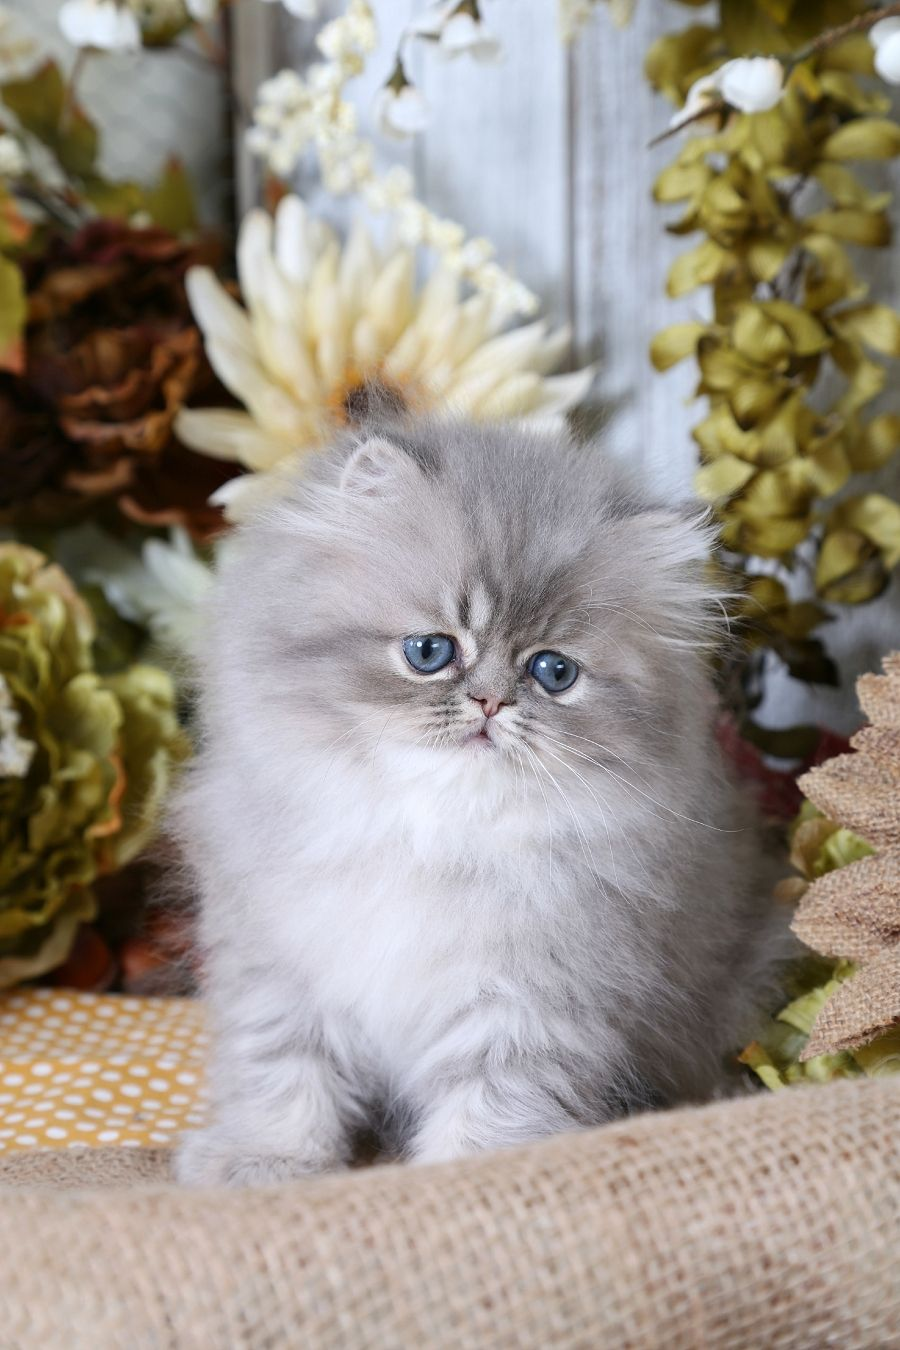 Blue Silver Tabby Persian Kitten For Sale Cute Cats And Dogs Baby Cats Persian Kittens